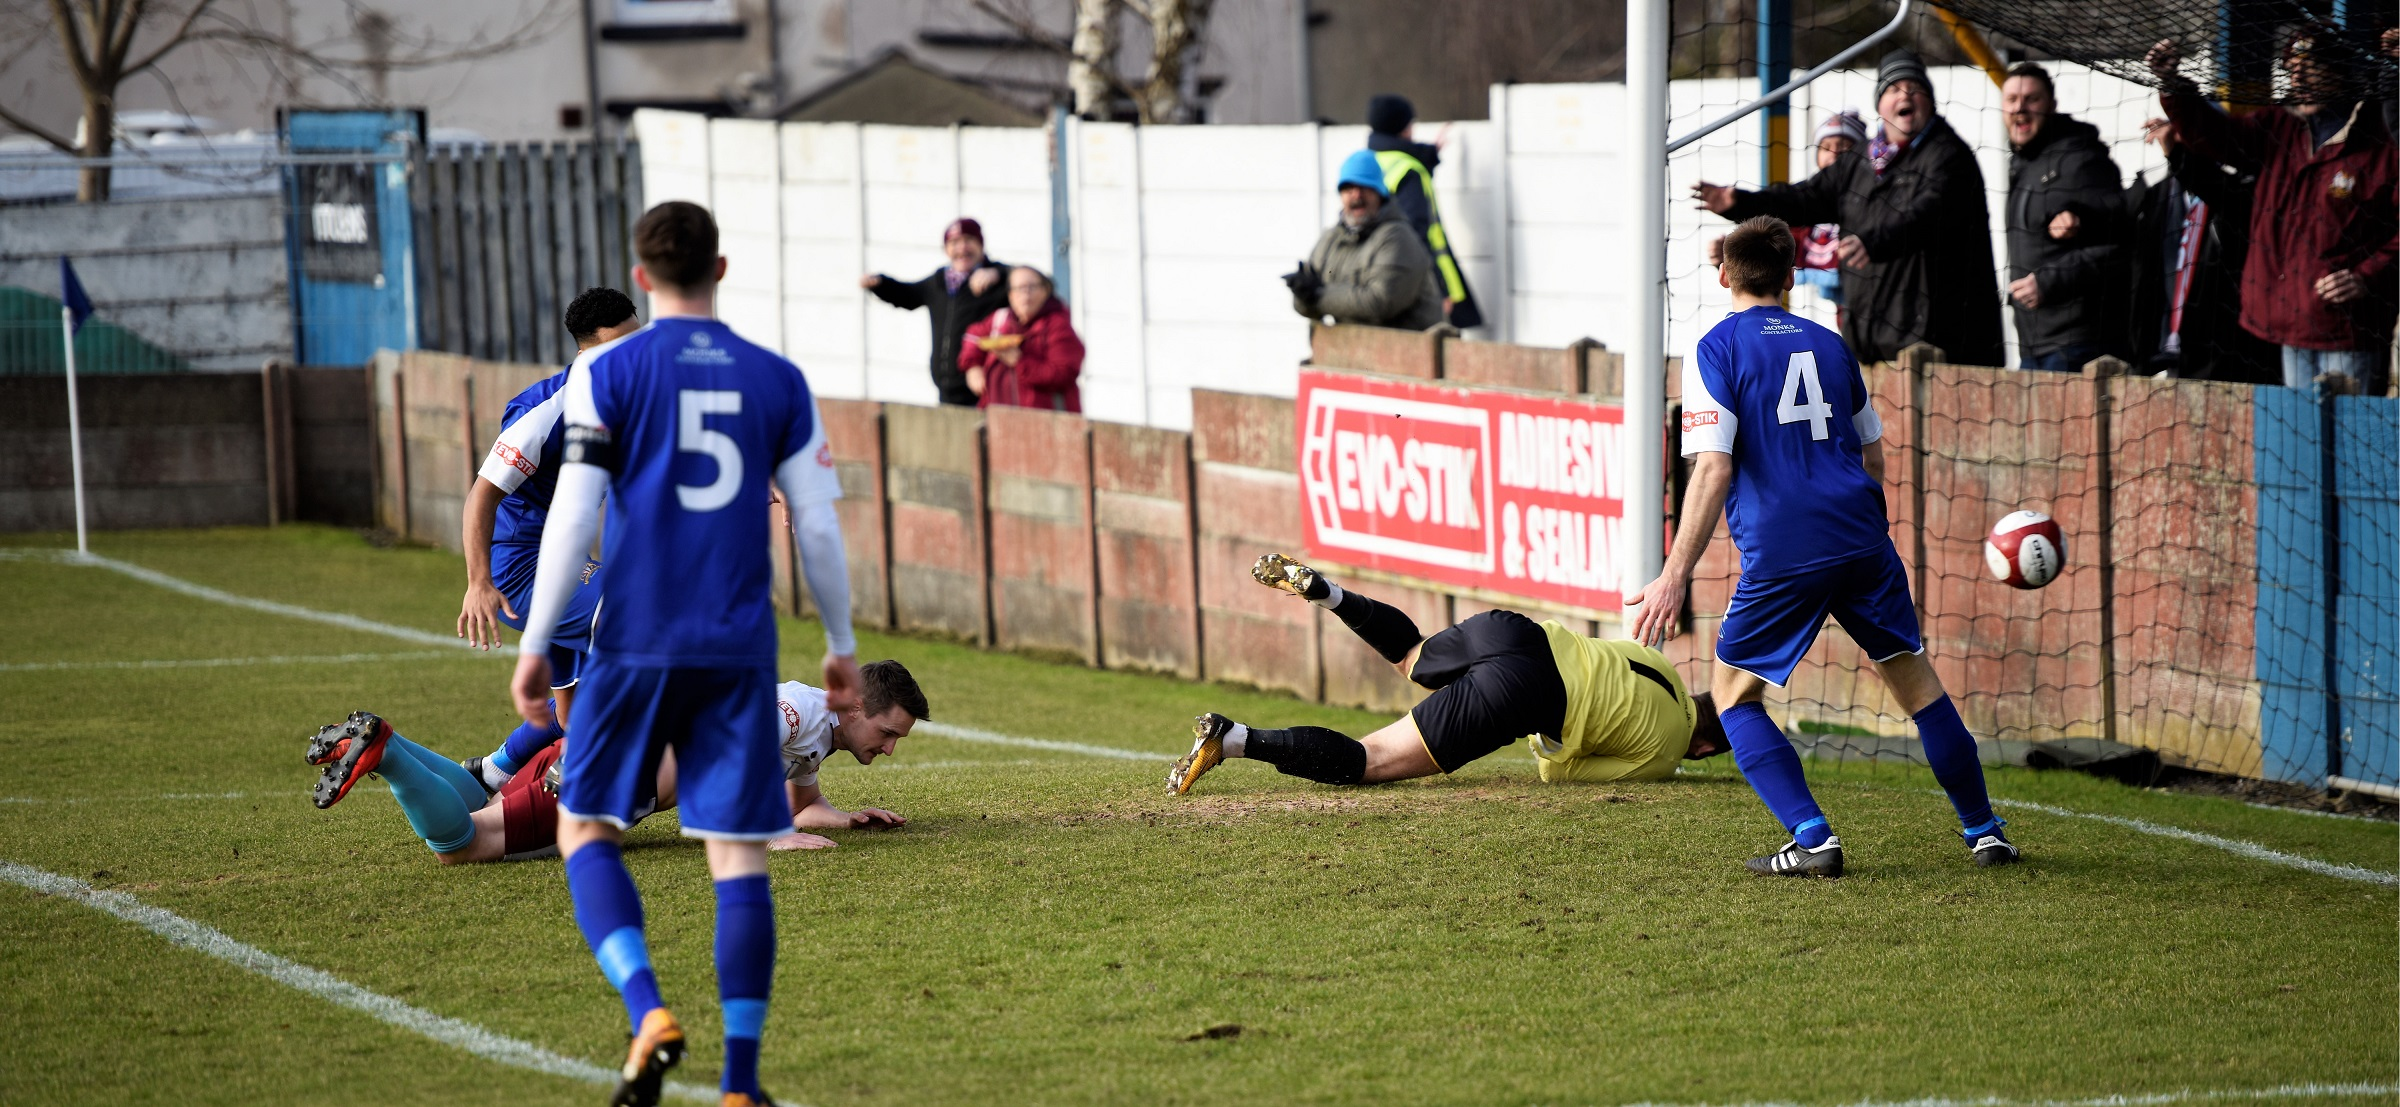 Clitheroe 0-1 South Shields: Armstrong header seals hard-fought win